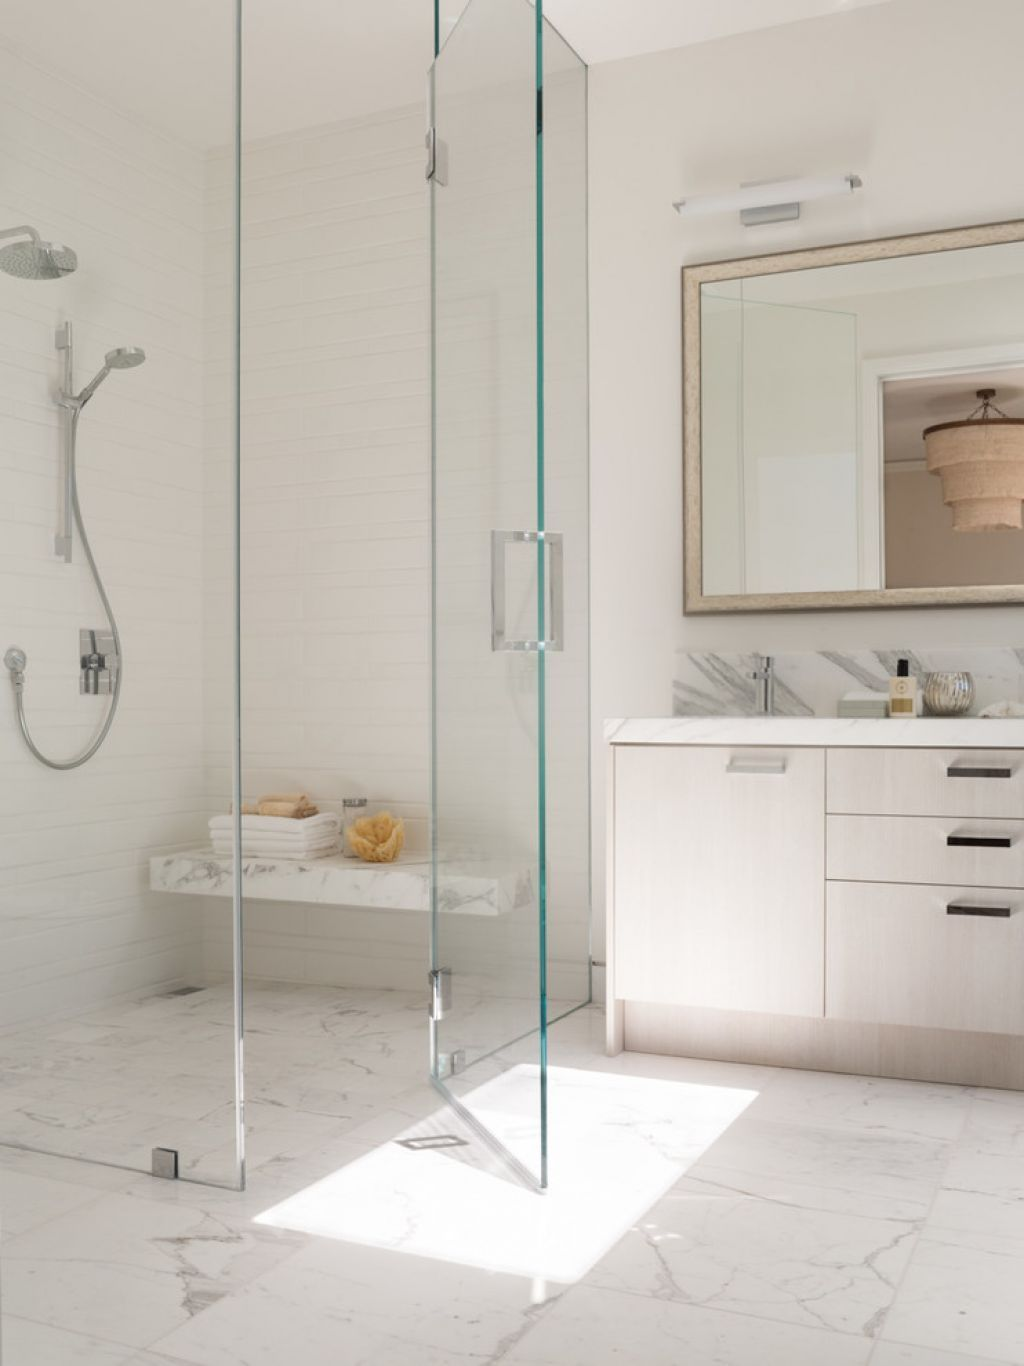 Bathroom Shower Stalls With Seats | Ideas for the House | Pinterest ...